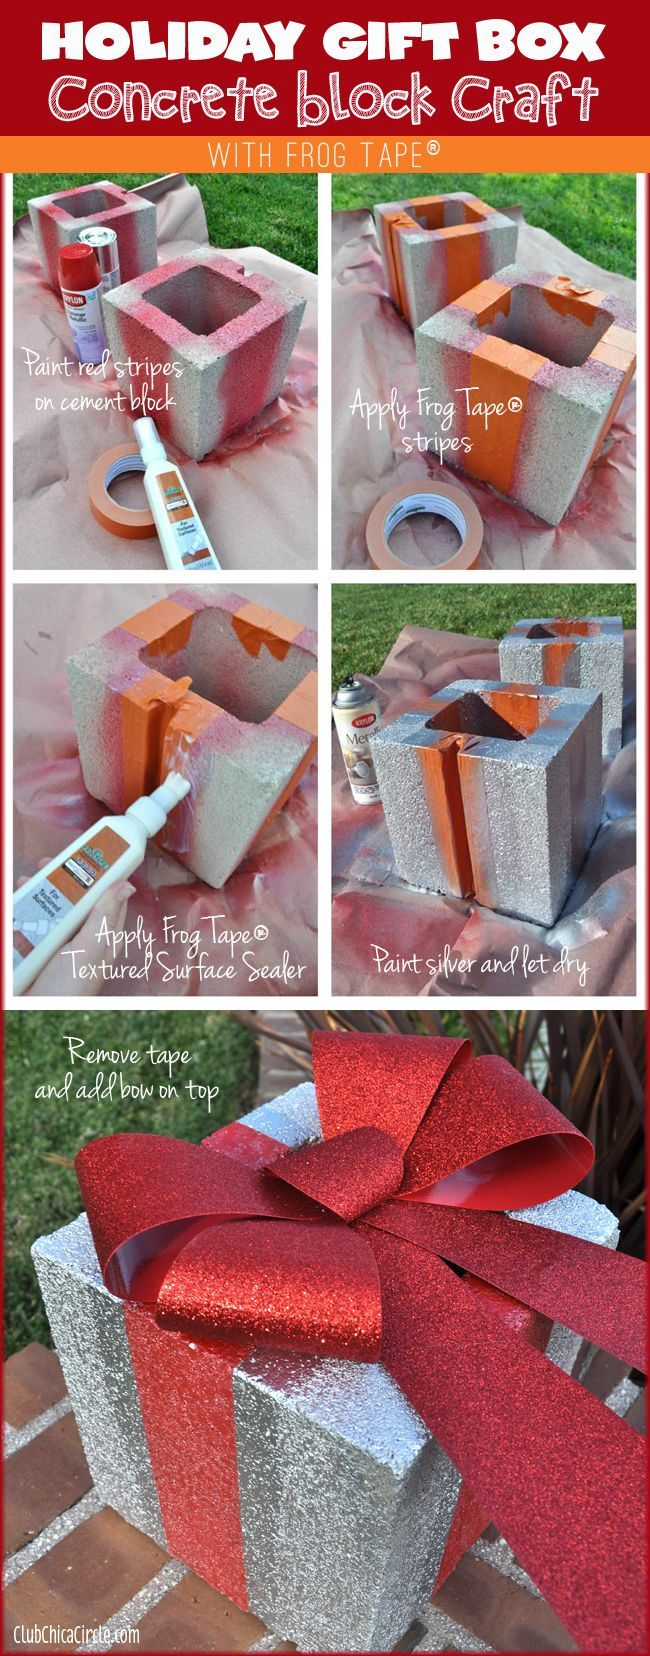 Holiday Gift Box Concrete Brick Tutorial: It's a really great way to add some fun holiday decor to the outside of your home. Turn simple concrete blocks into a fun holiday gift box. So cute!